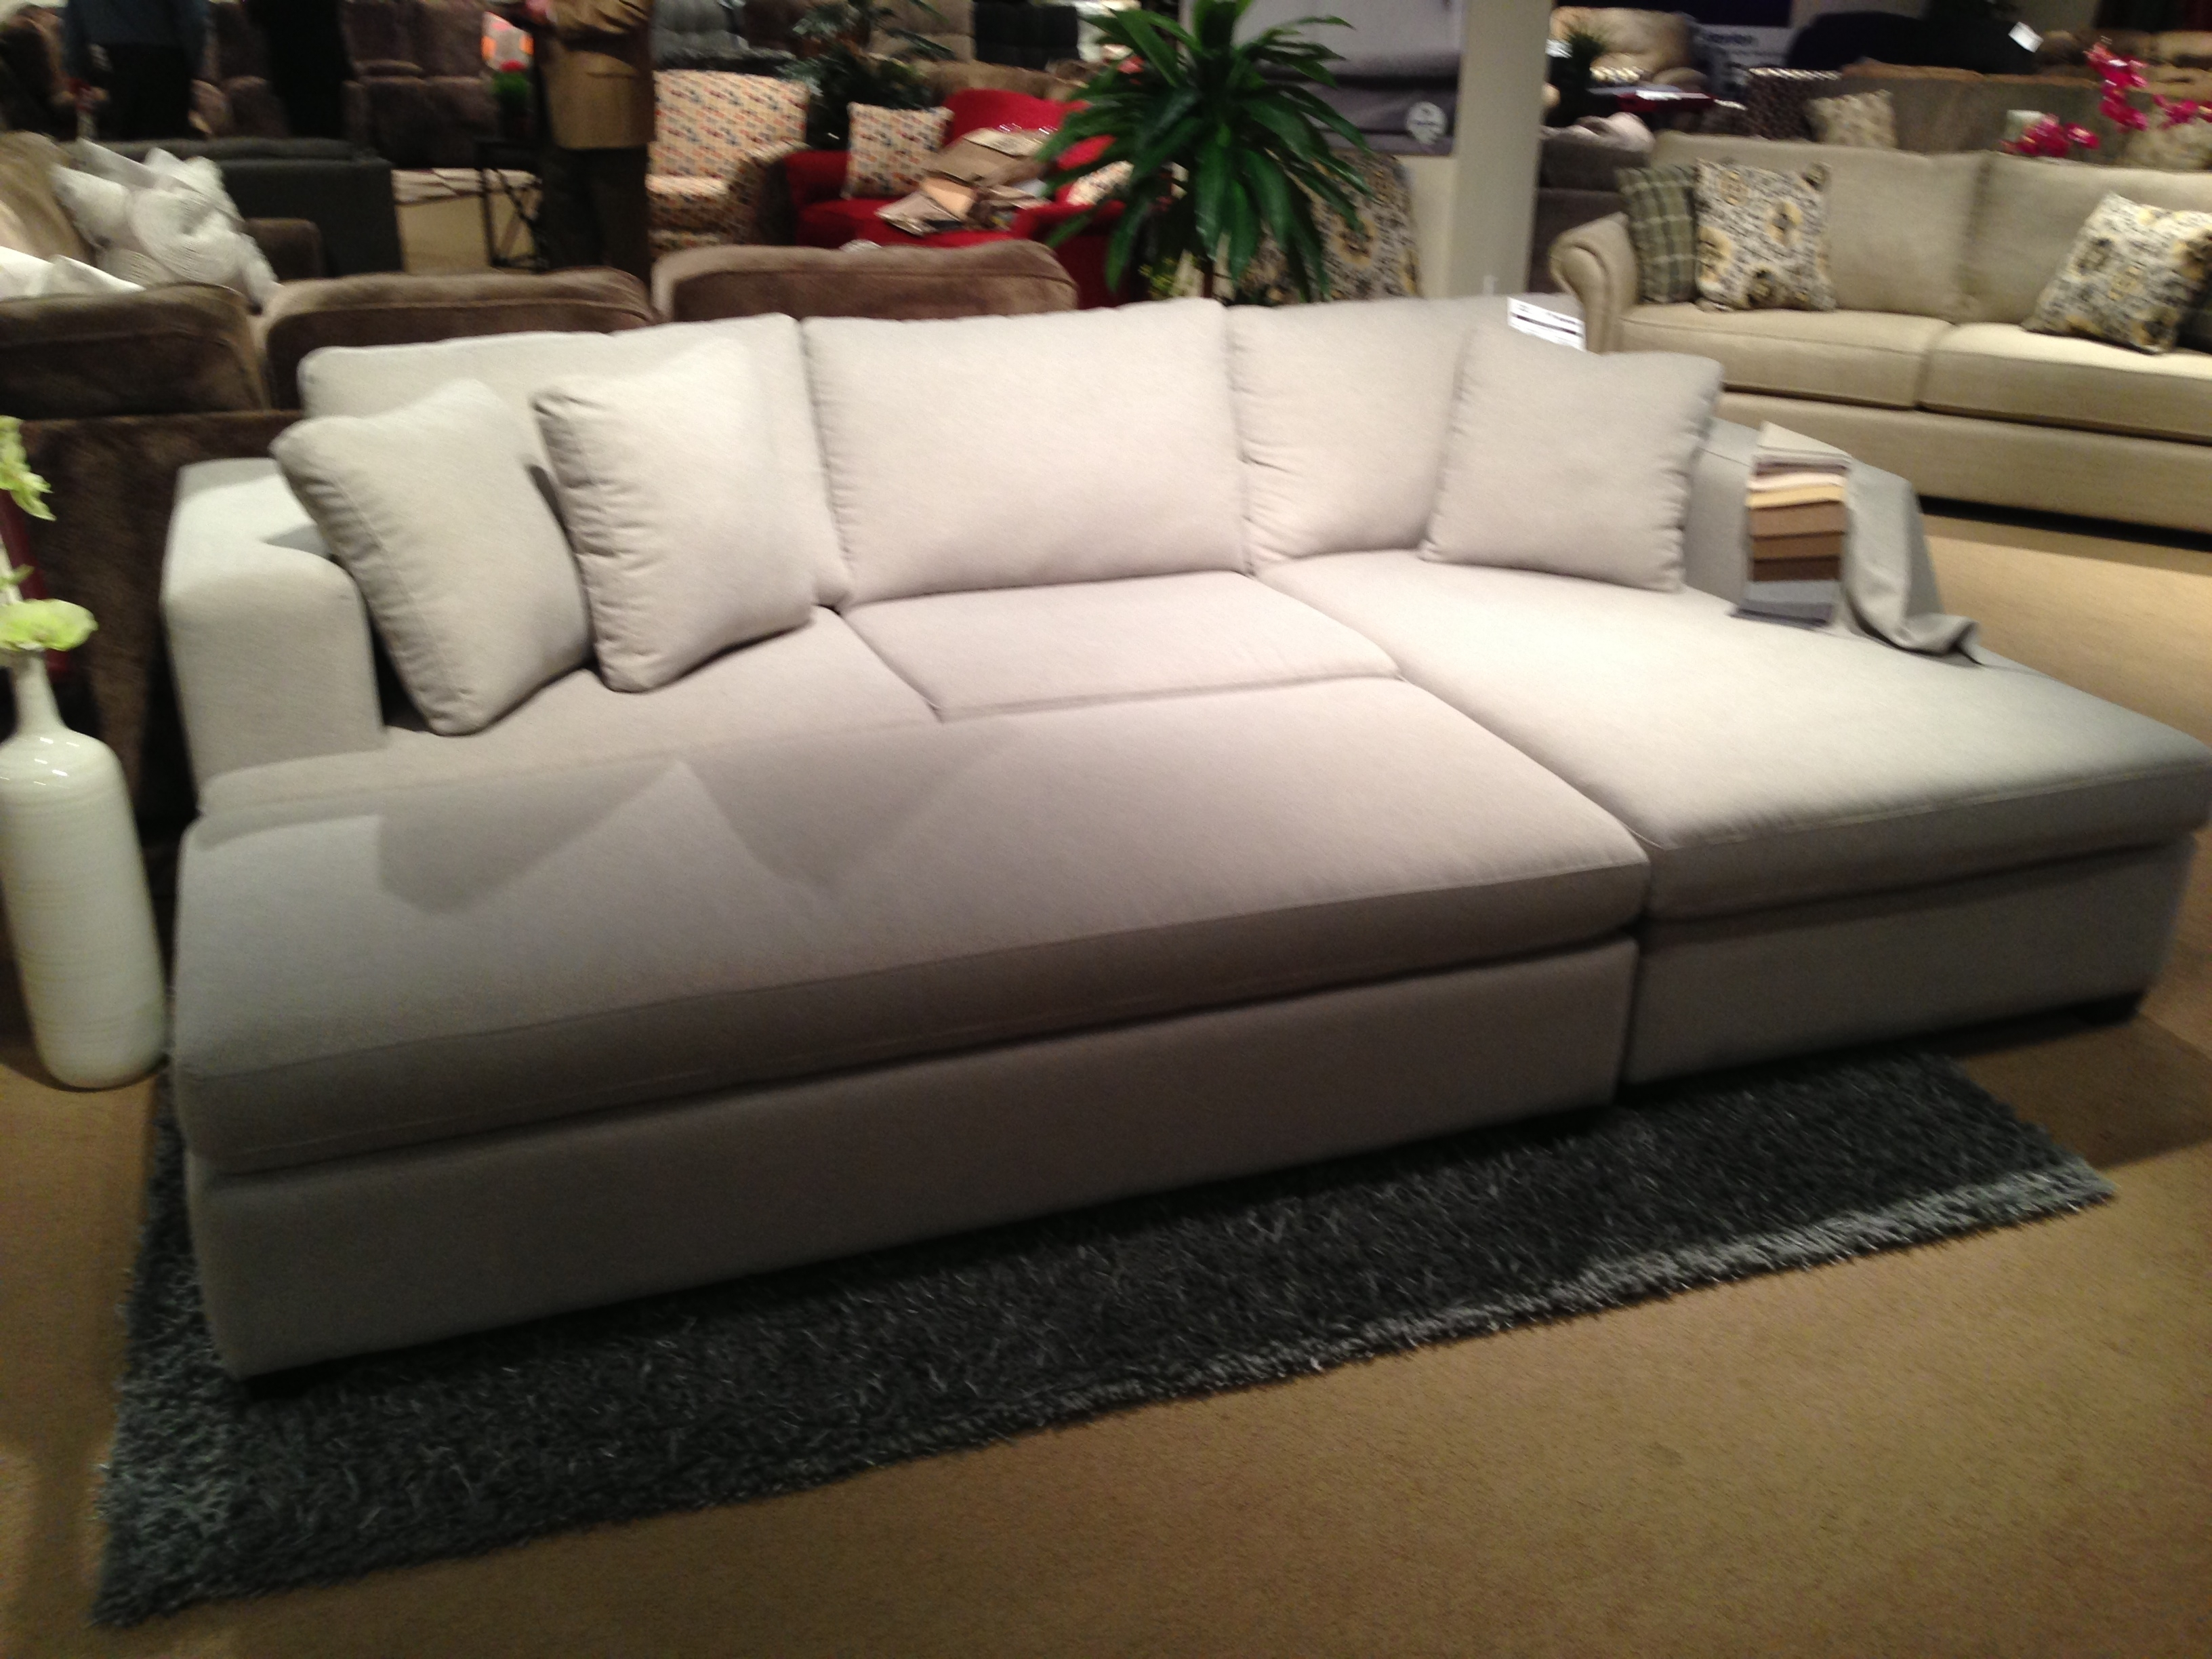 Sectional | Tweetalk Within Cheap Sectionals With Ottoman (View 15 of 15)